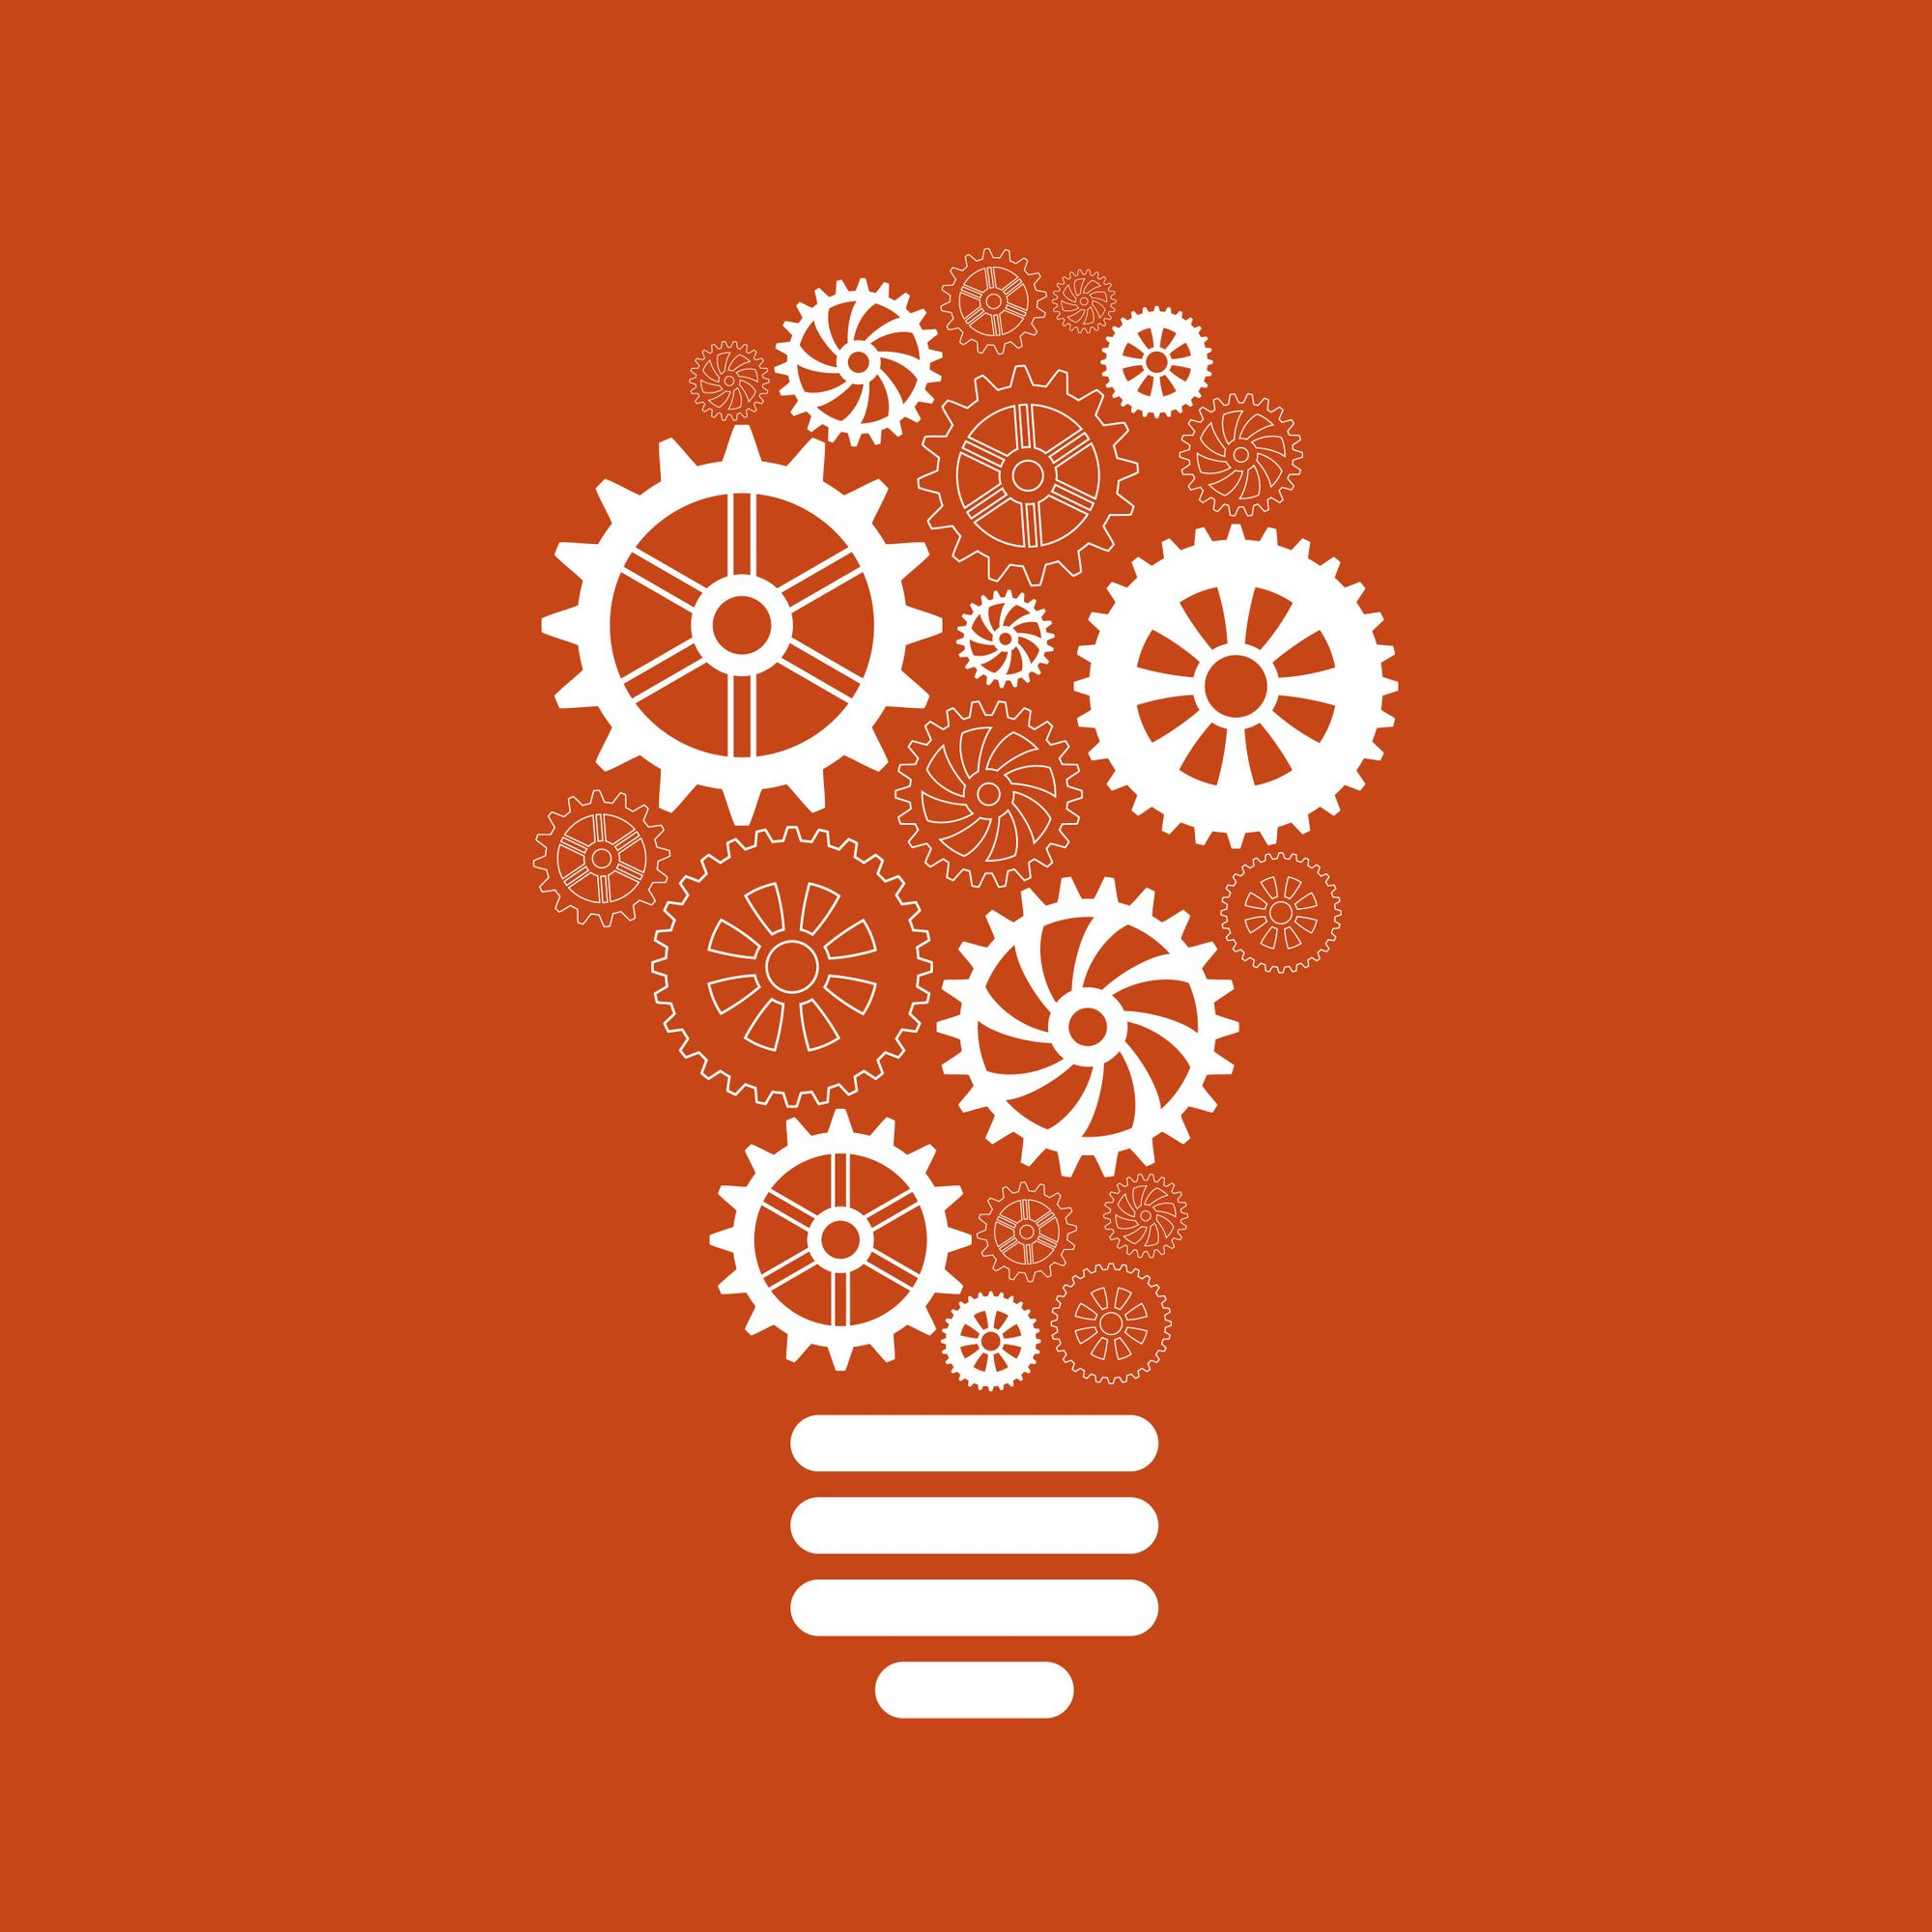 Here's How Innovation Can Impact Engineering Skills